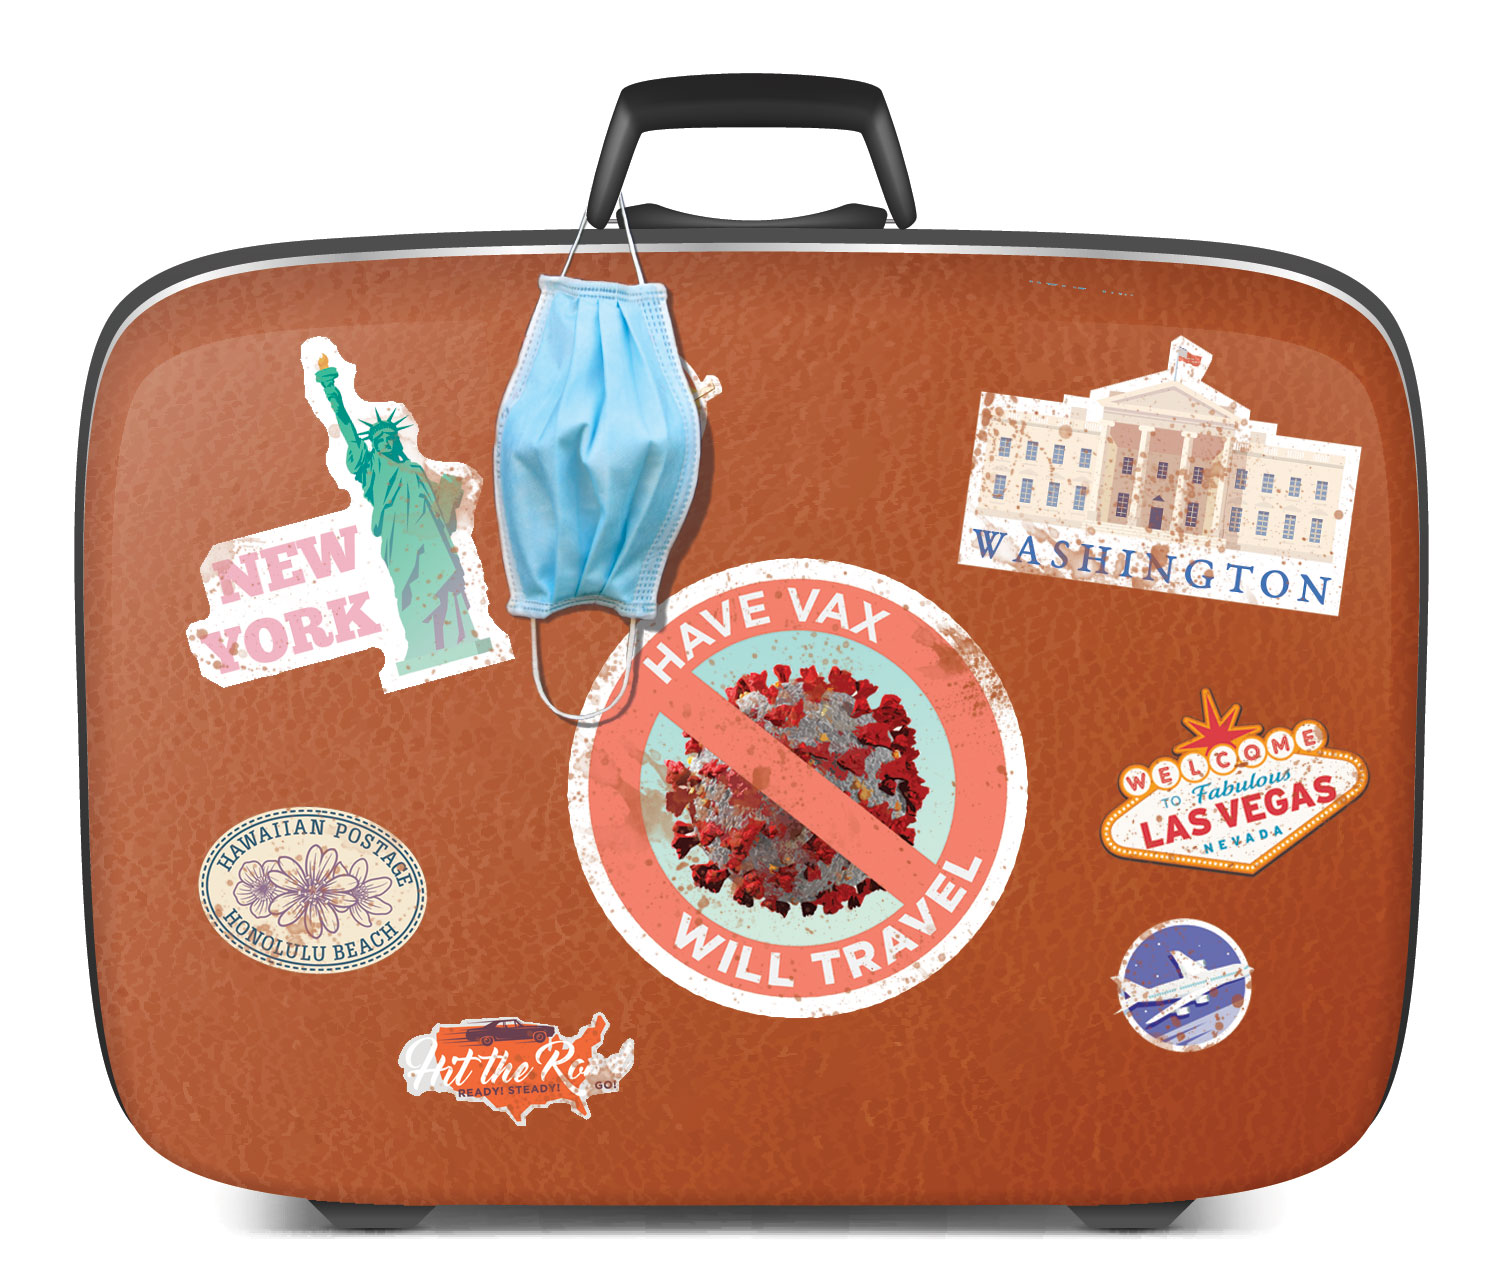 vintage suitcase with travel stickers, including one that says 'have vax, will travel' and a mask hanging off the handle